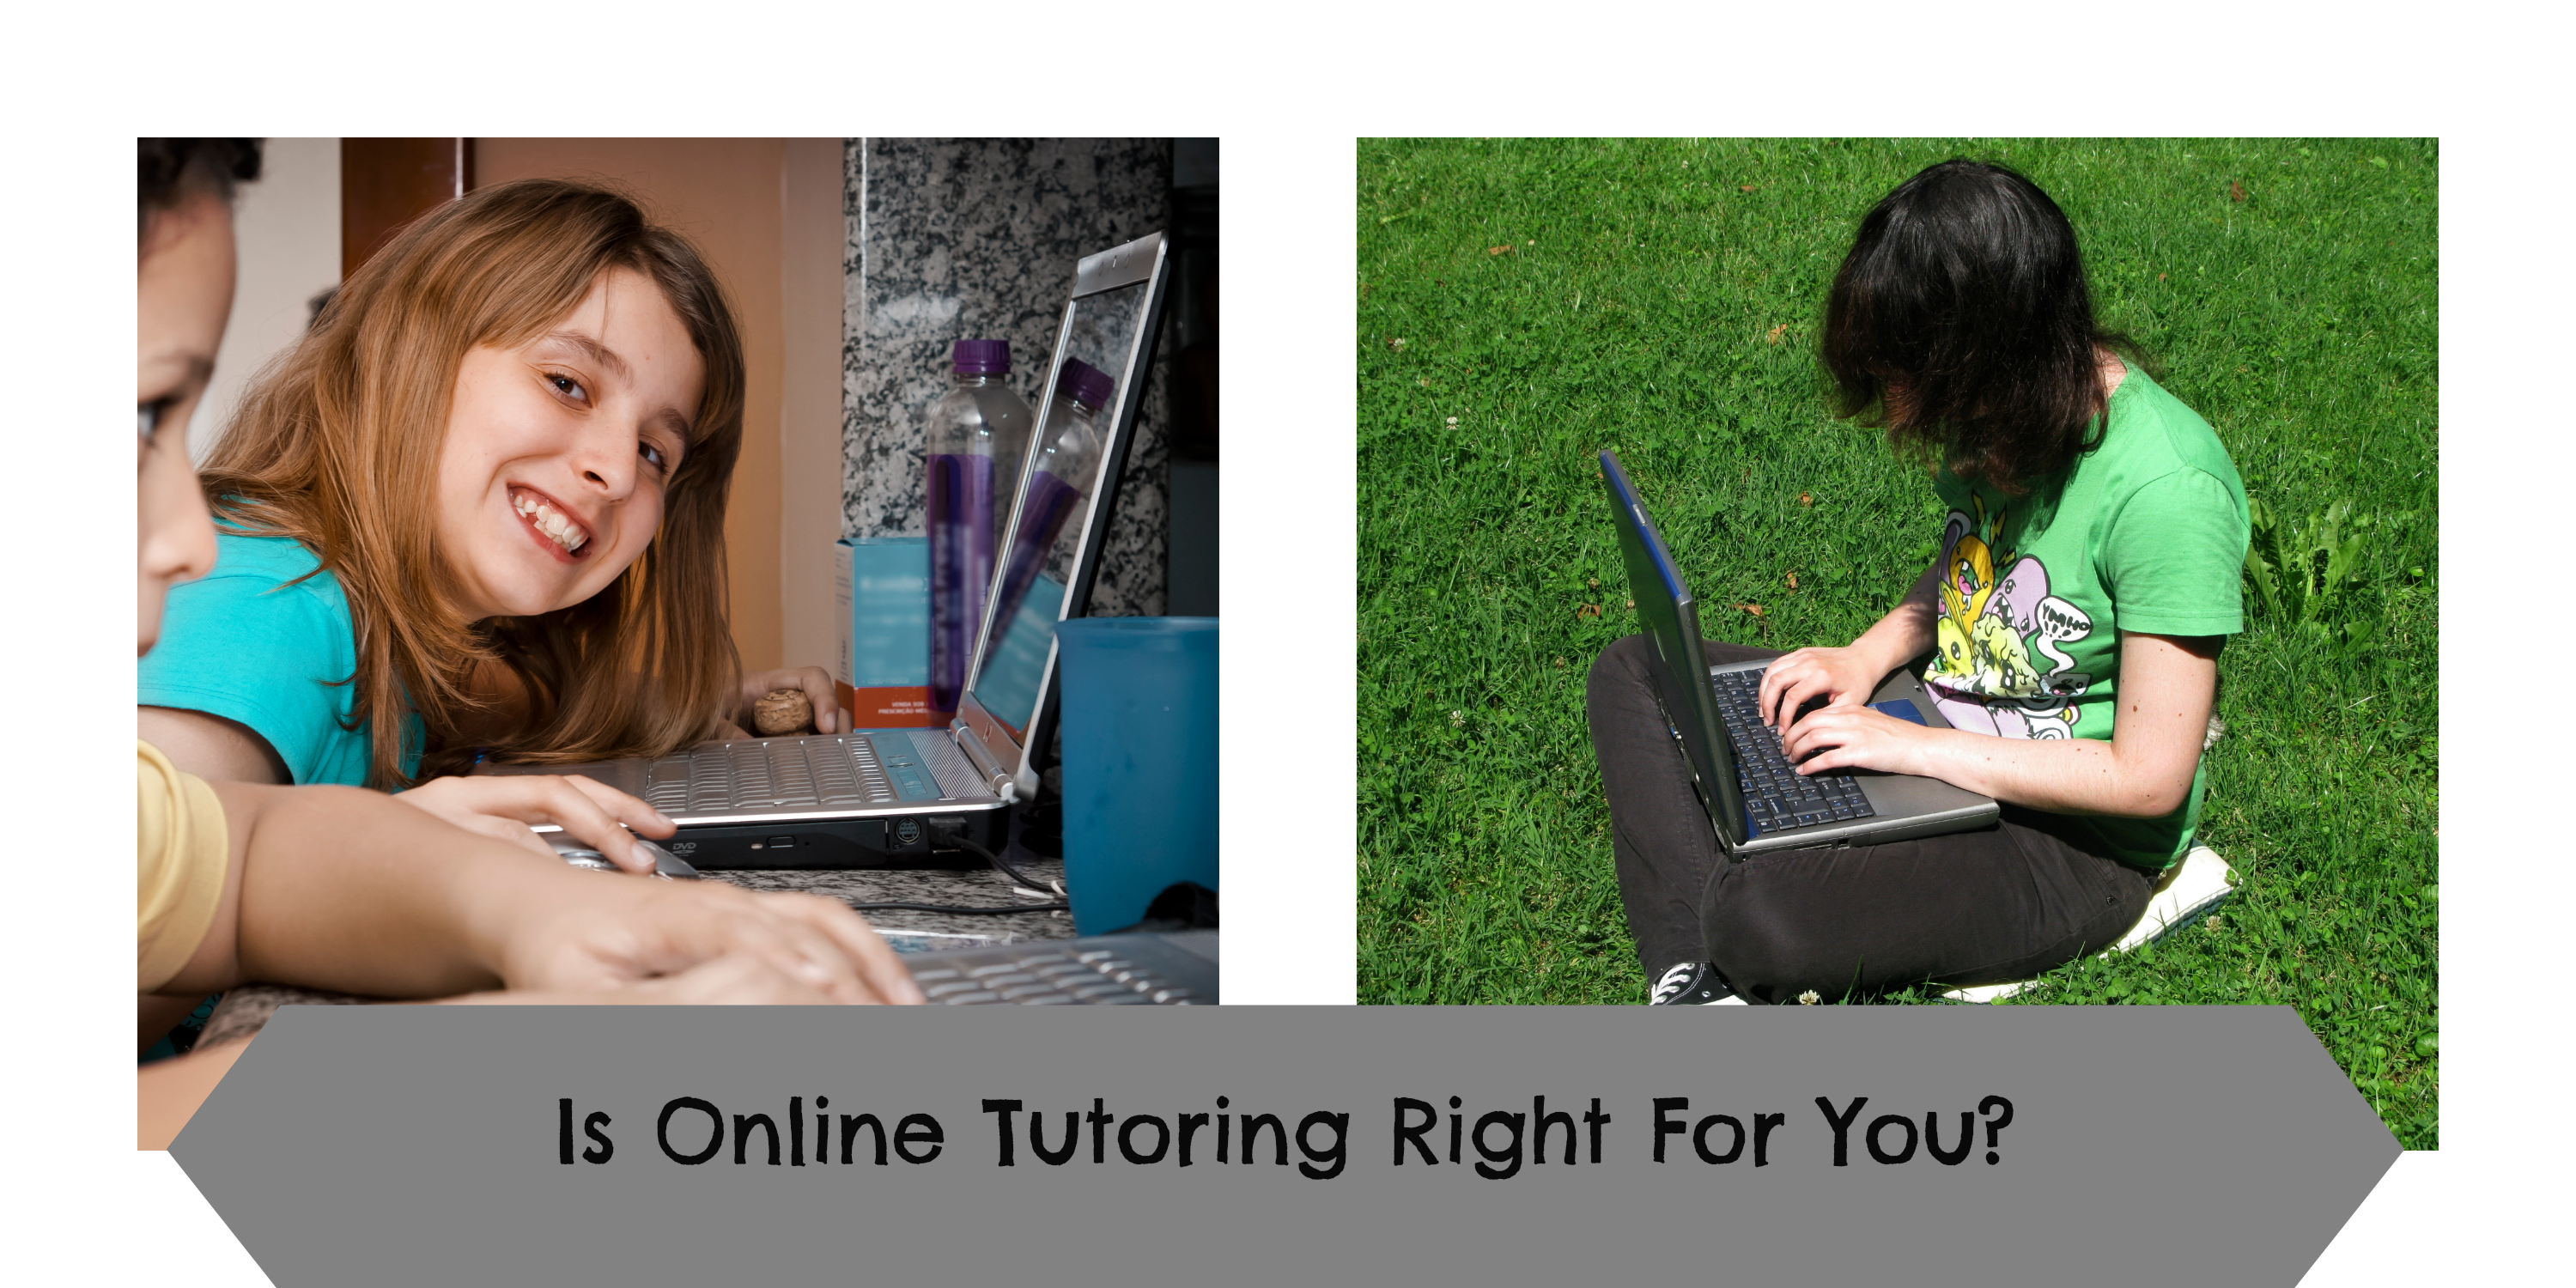 Online Tutoring – Is it Right For You or Your Child?